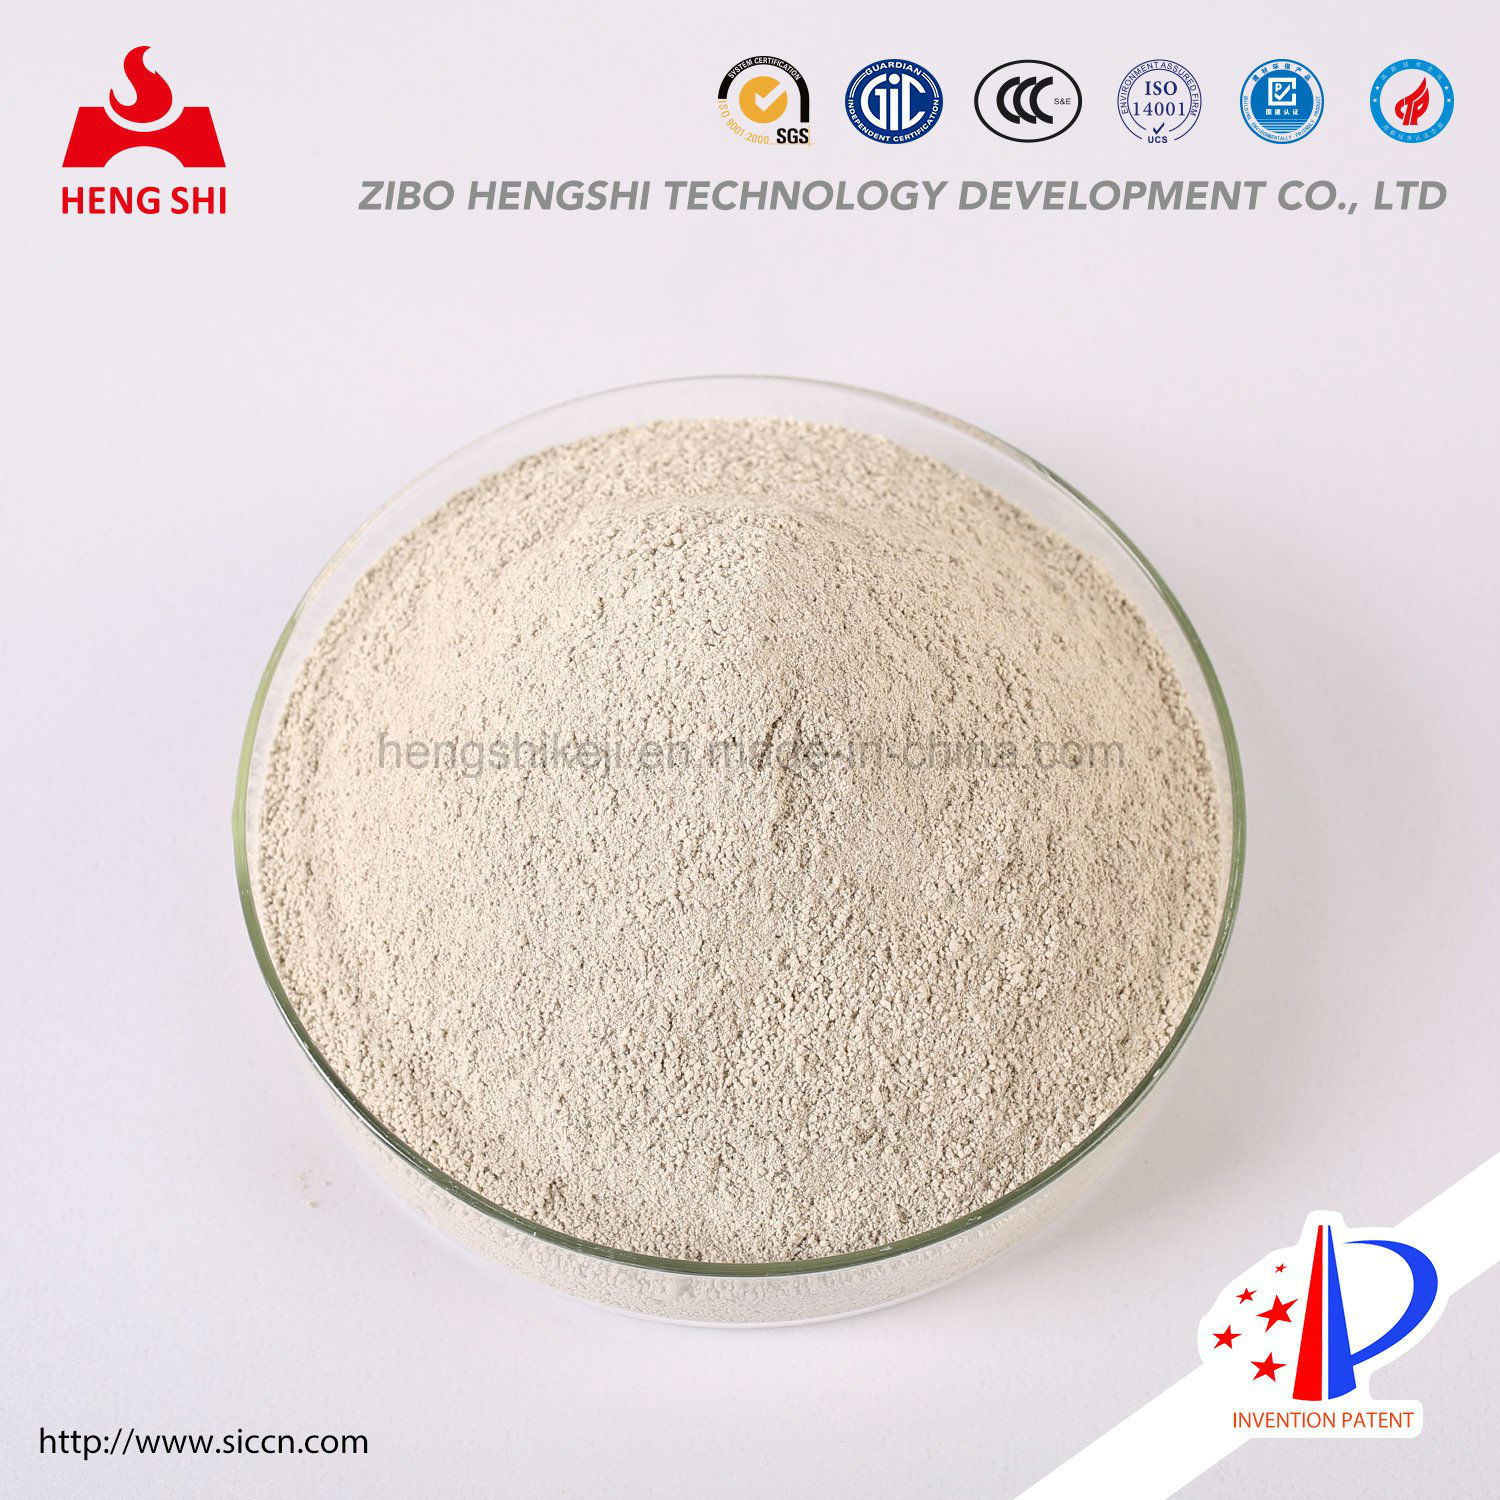 New-Type Chemcial Material Silicon Nitride Powder for Photovoltaic Coating